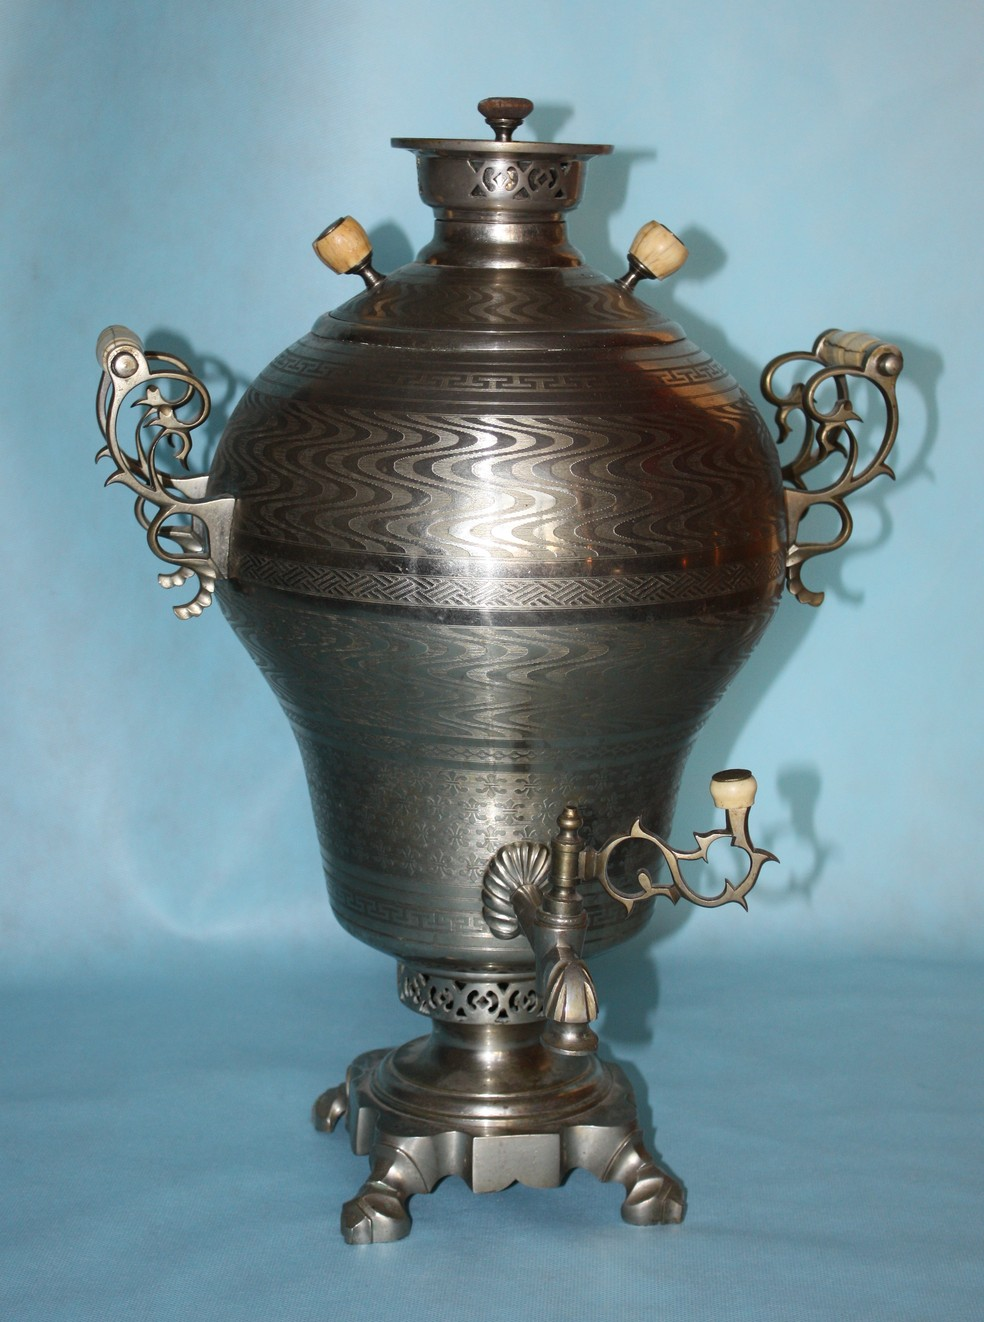 Samovar russo (Foto: Benito bonito /CC BY-SA 3.0 -https://commons.wikimedia.org/w/index.php?curid=11877618)